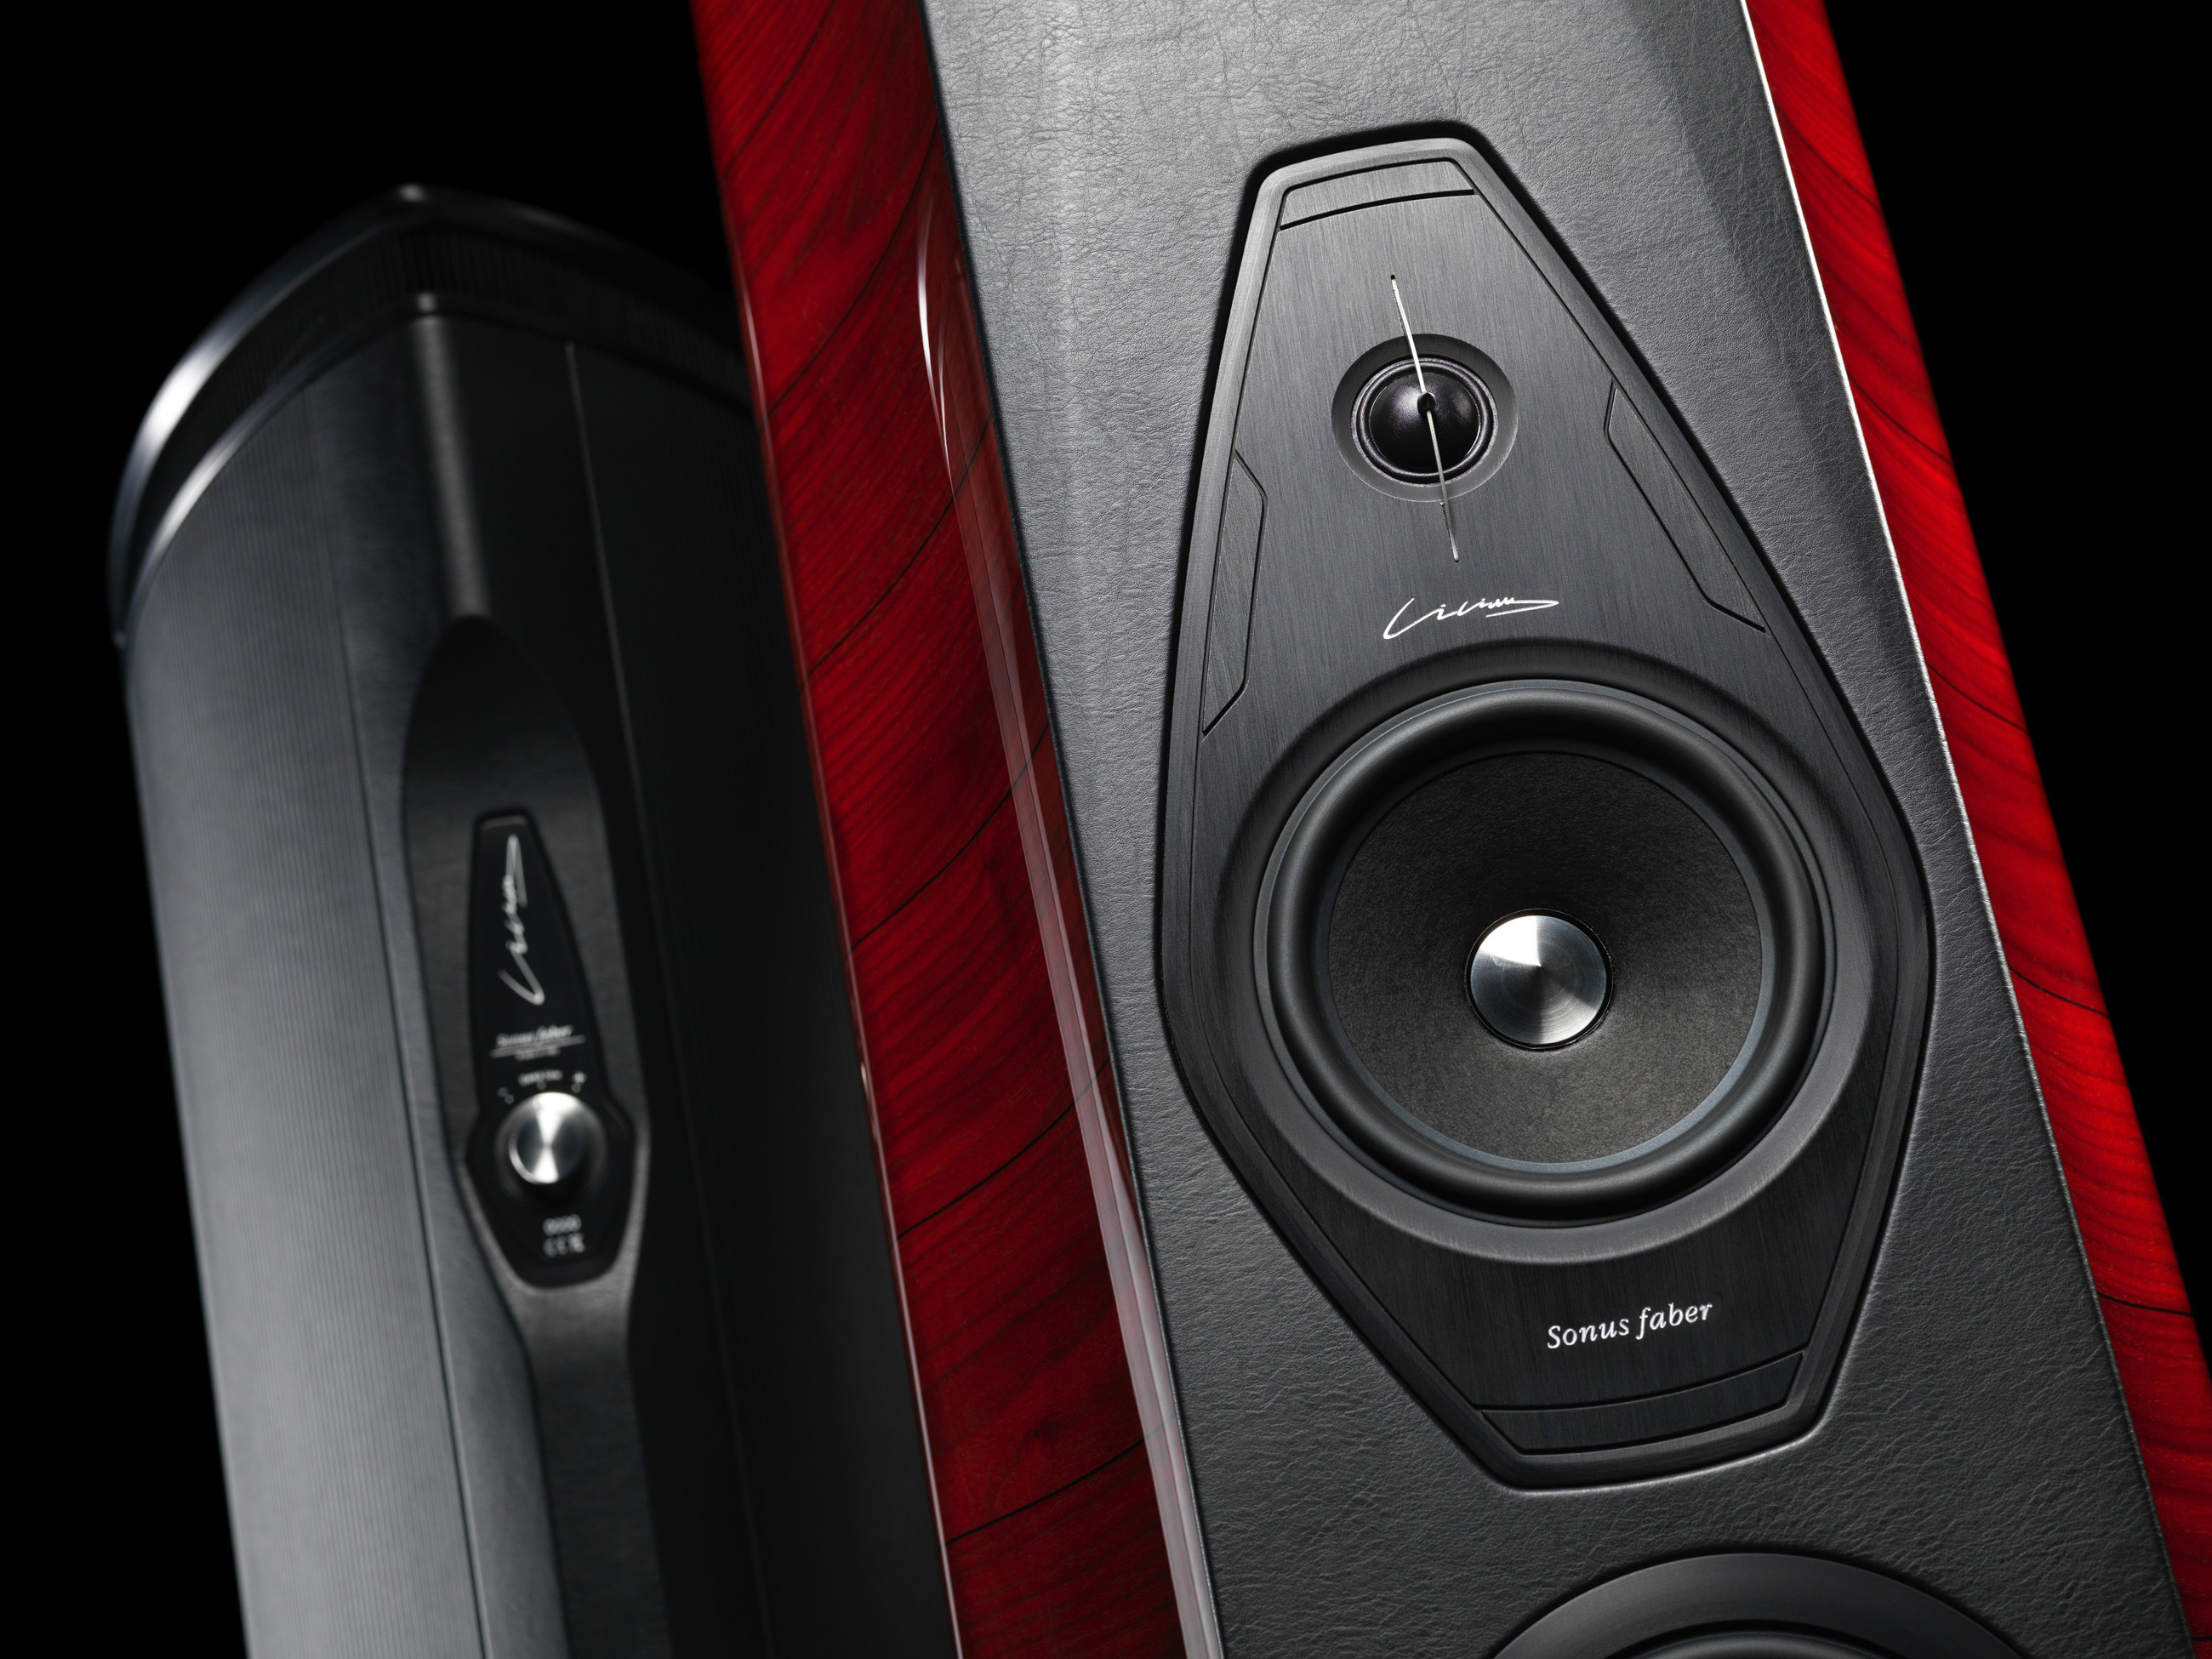 AUDIO SALON | Sonus faber